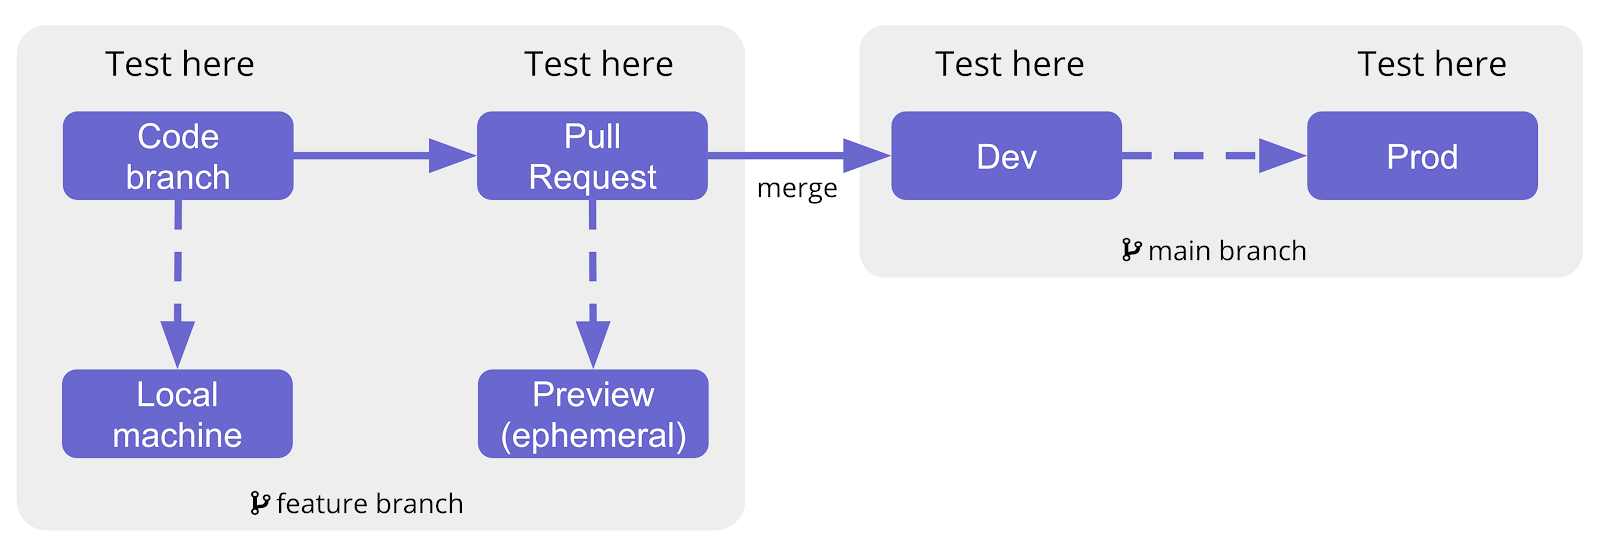 A diagram showing a feature branch merged into the main branch and when testing happens.